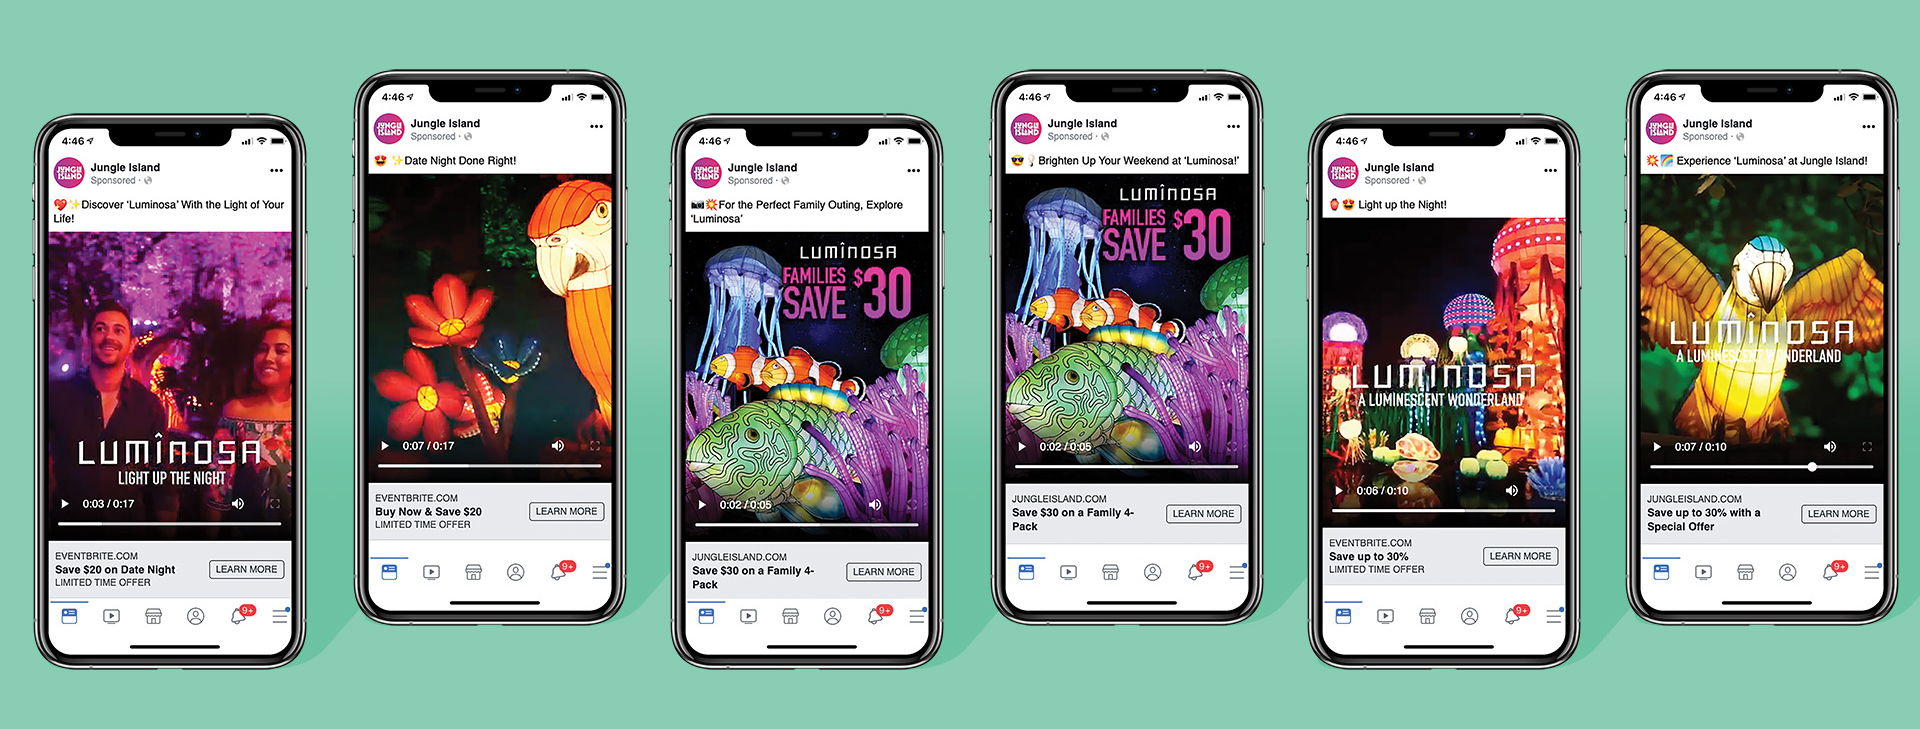 six phones in a row showing Jungle Island Luminosa campaign on Facebook